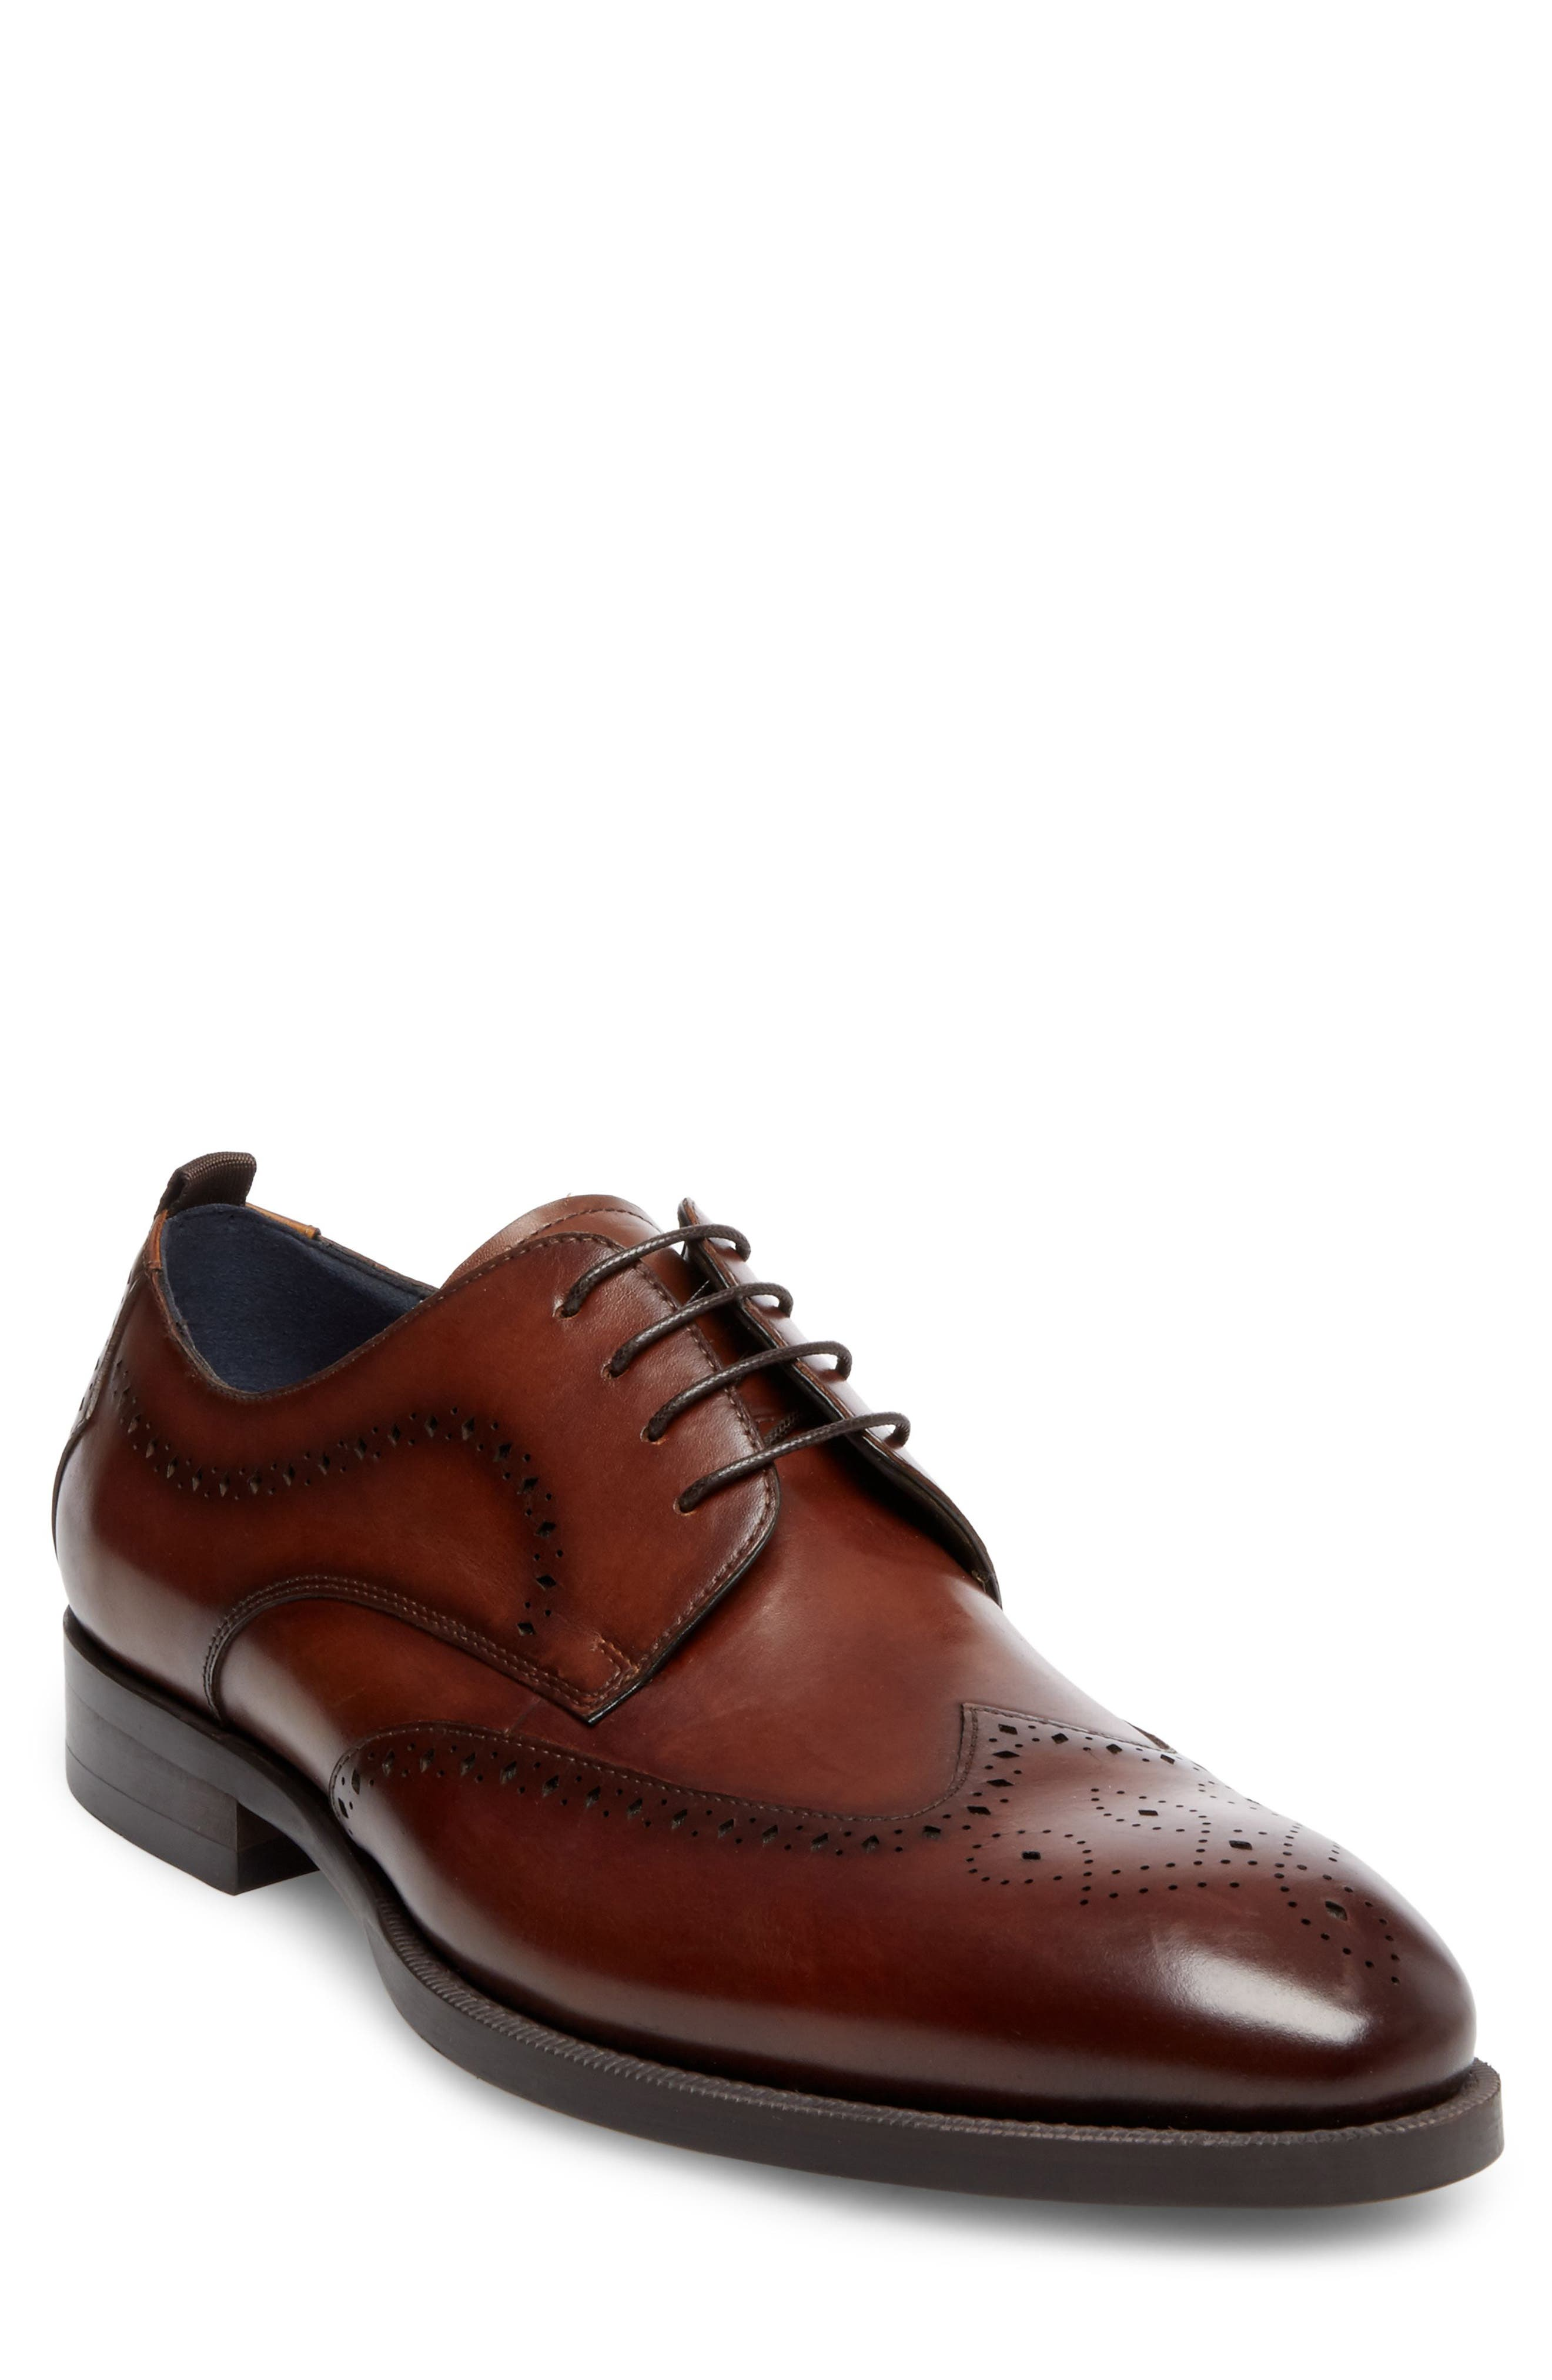 Candyd Wingtip,                             Main thumbnail 1, color,                             Brown Leather